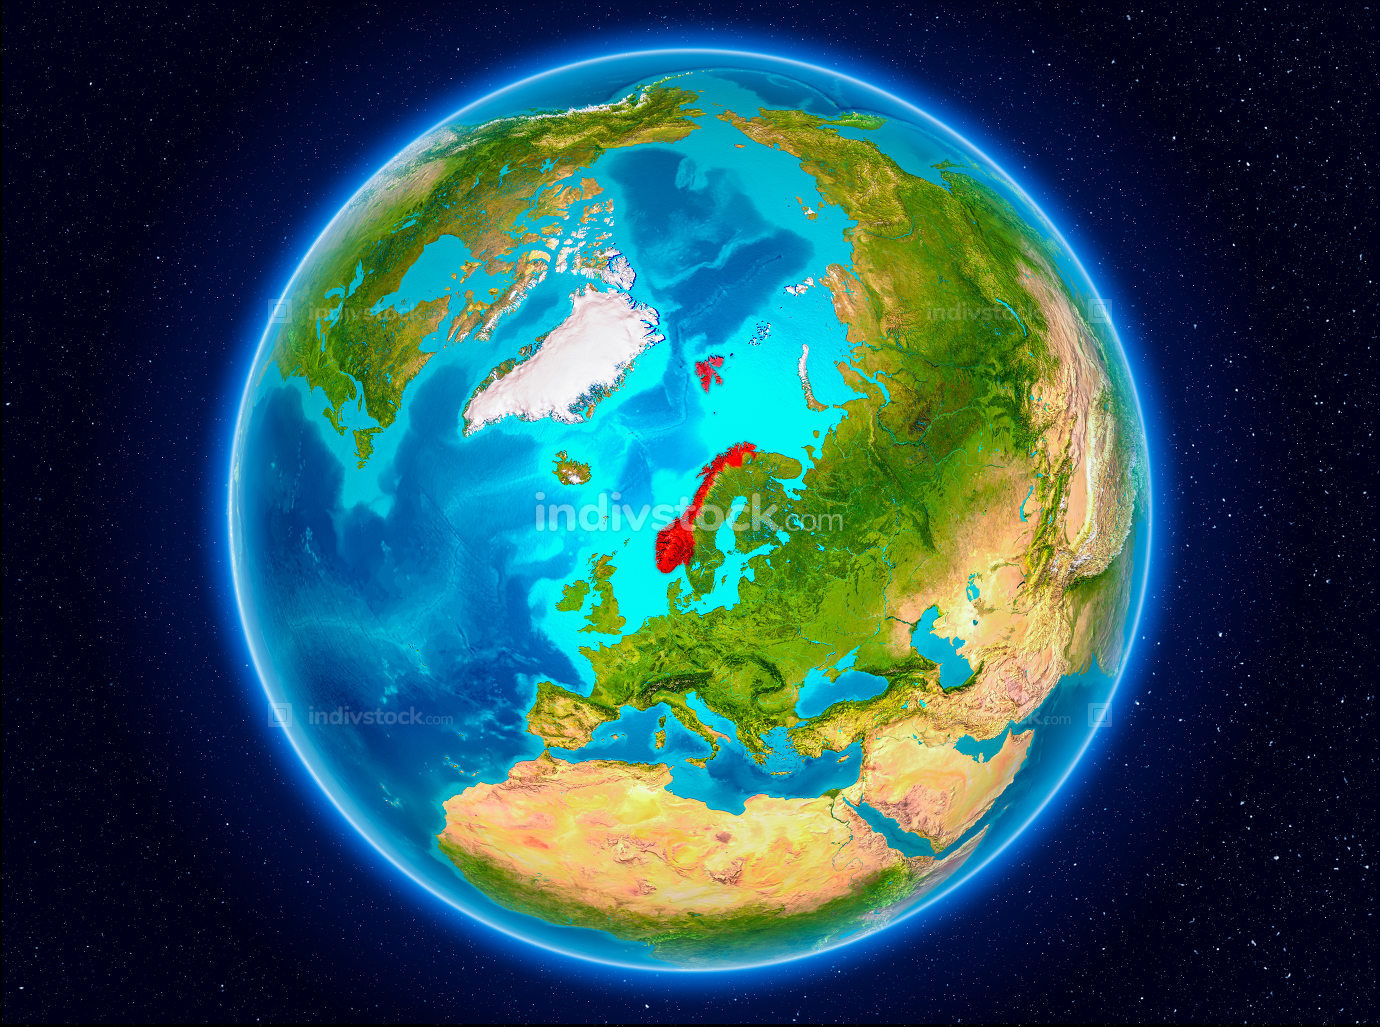 Norway on Earth